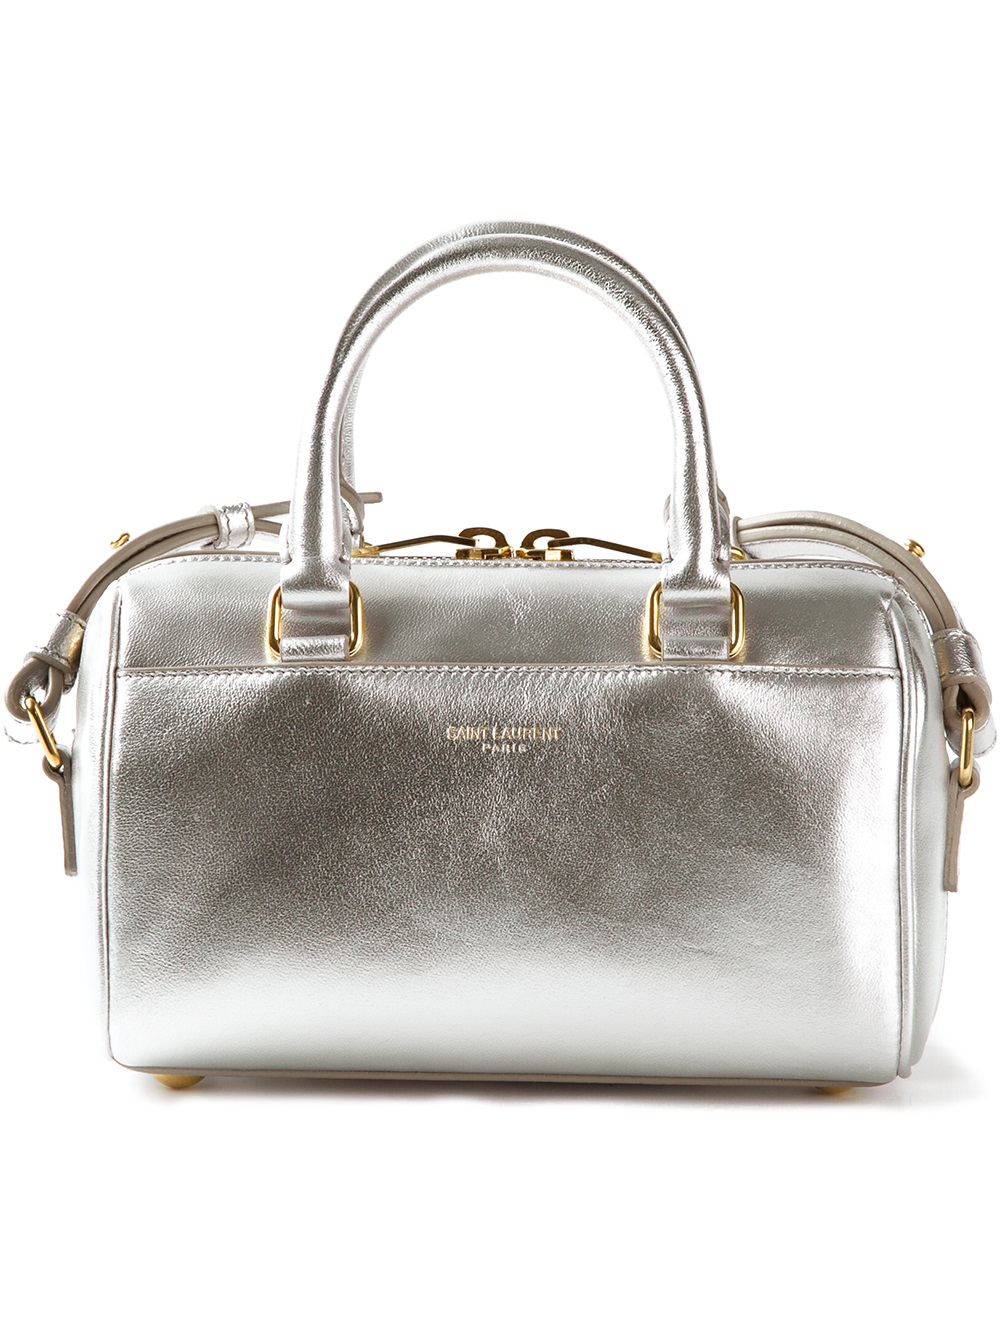 59b2e96a5172 Gallery. Previously sold at  Farfetch · Women s Saint Laurent Duffle ...